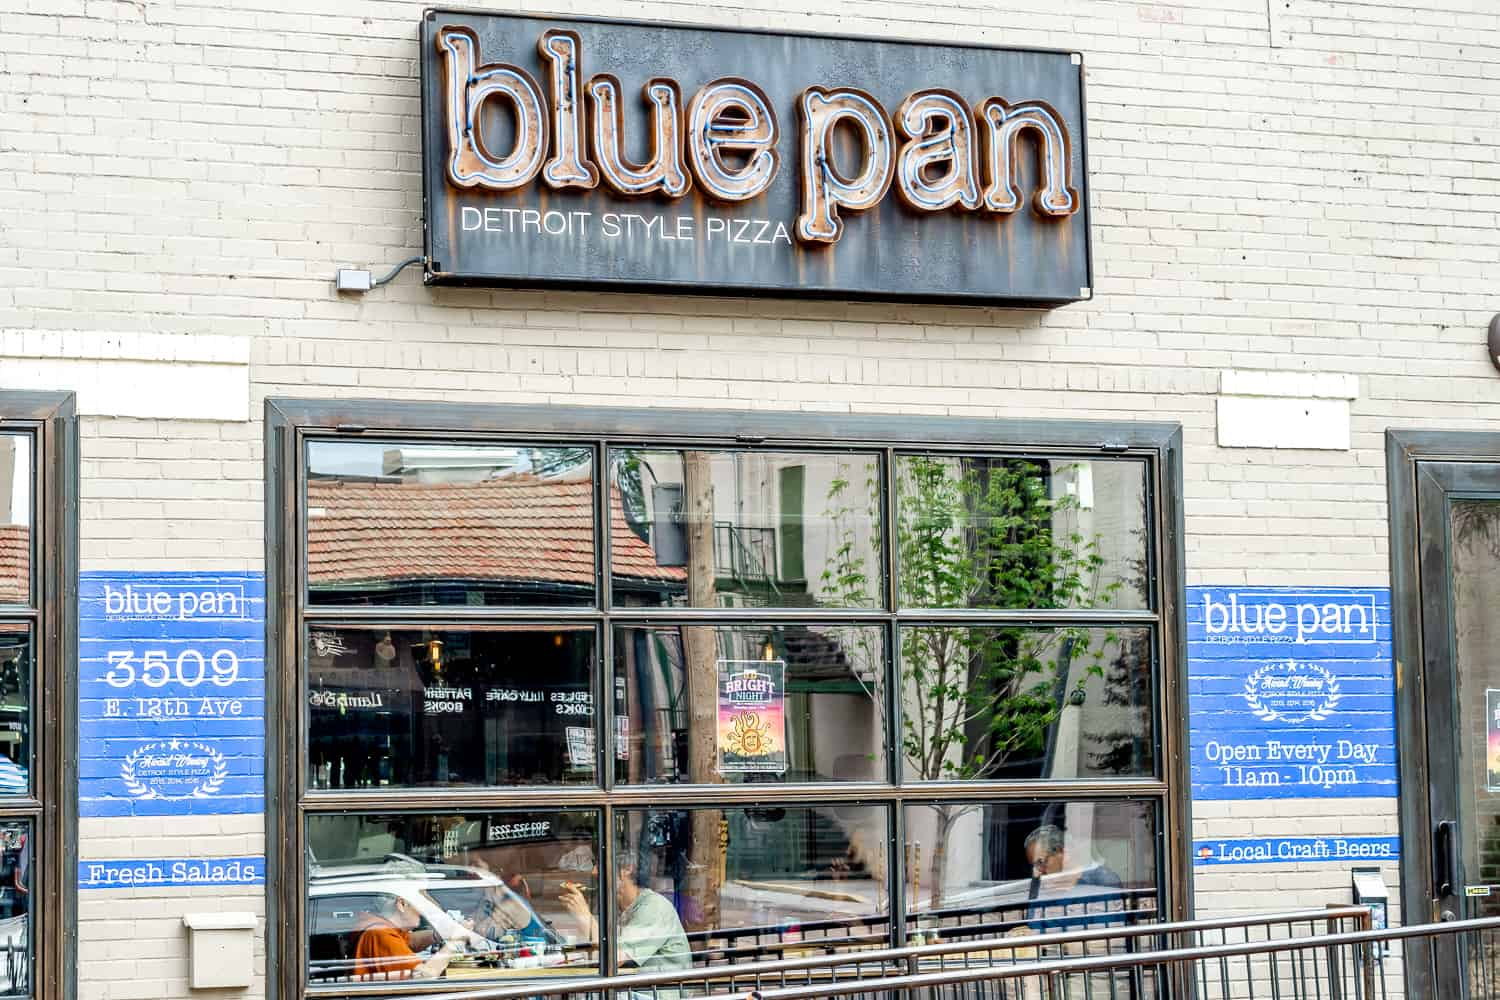 blue pan pizza, denver co